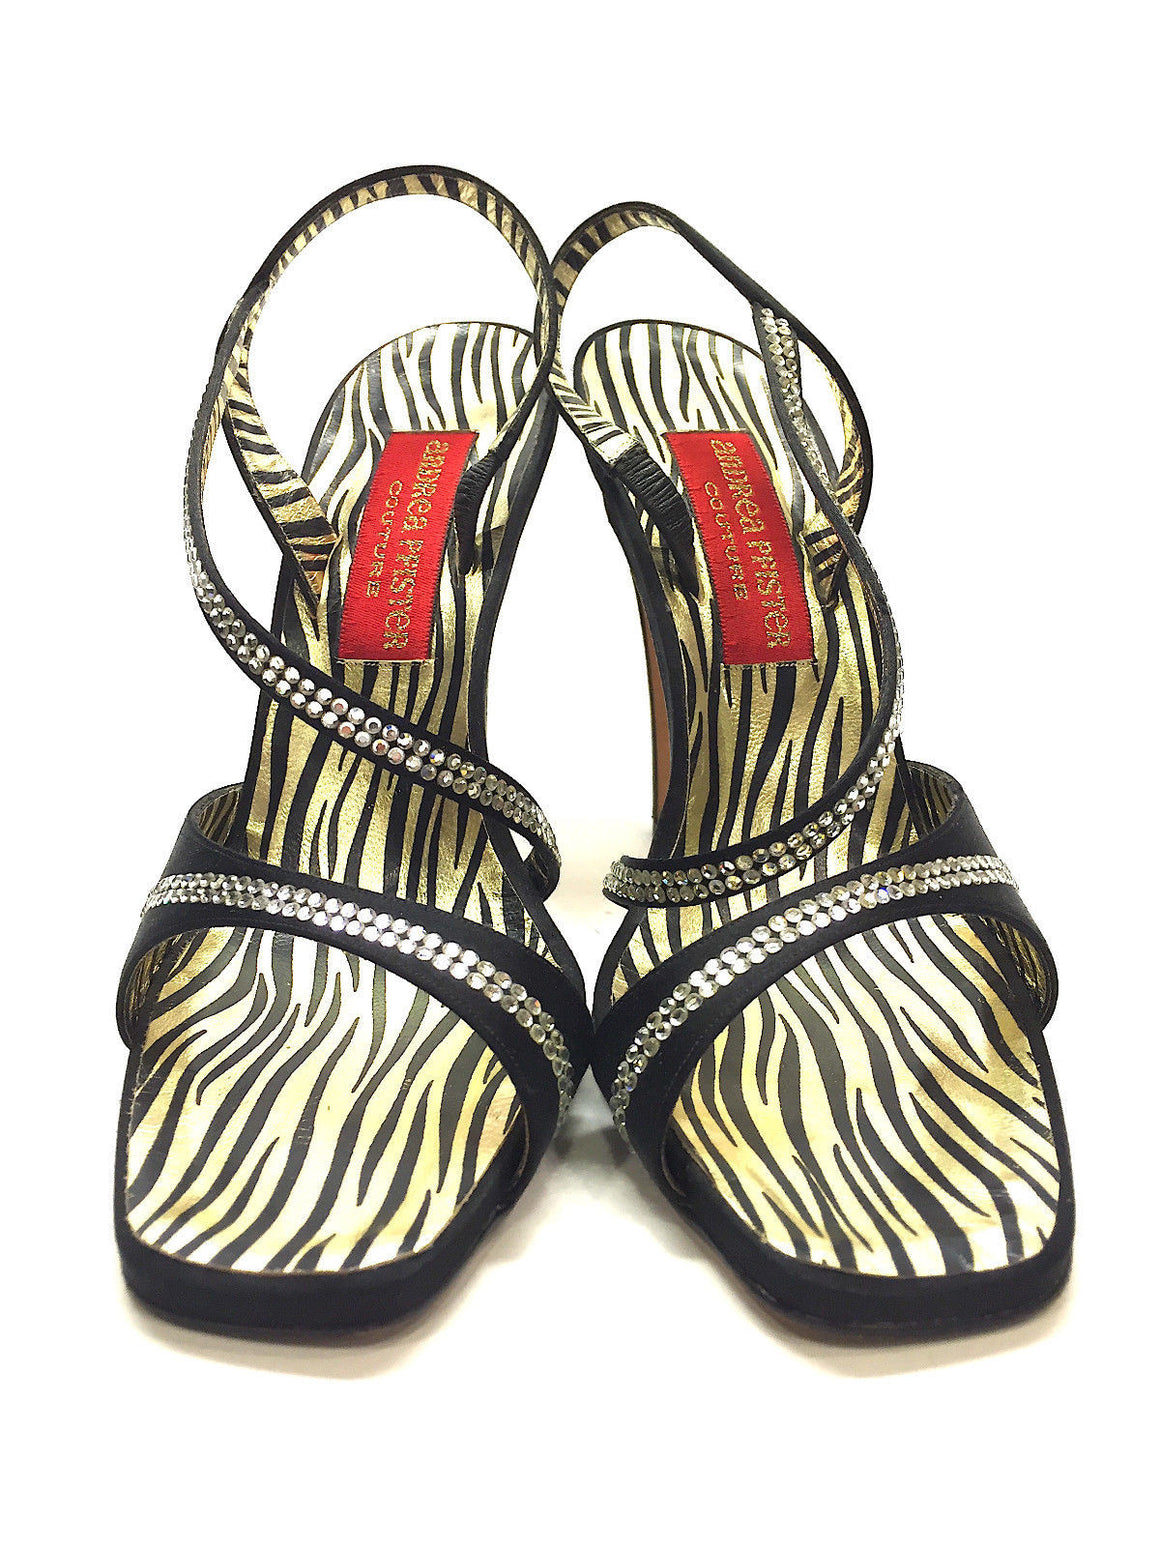 bisbiz.com ANDREA PFISTER COUTURE  Black Silk Crystal Trim Strappy Heel Slingback Sandals  Size: 9 - Bis Luxury Resale